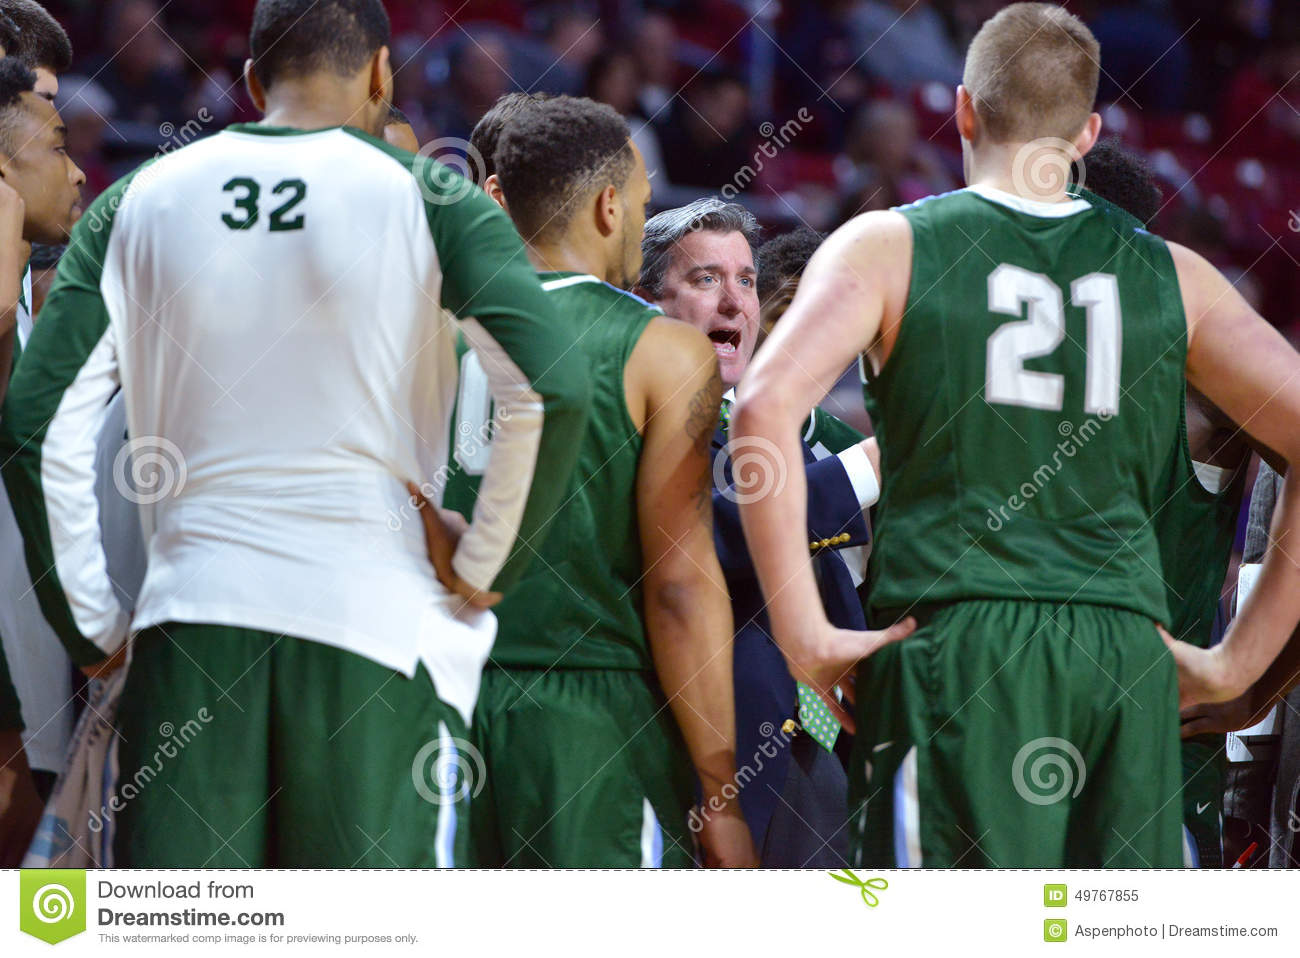 a8949acdf51b PHILADELPHIA - JANUARY 31  Tulane Green Wave head coach Ed Conroy talks to  his team in a timeout during the AAC conference college basketball game  January ...